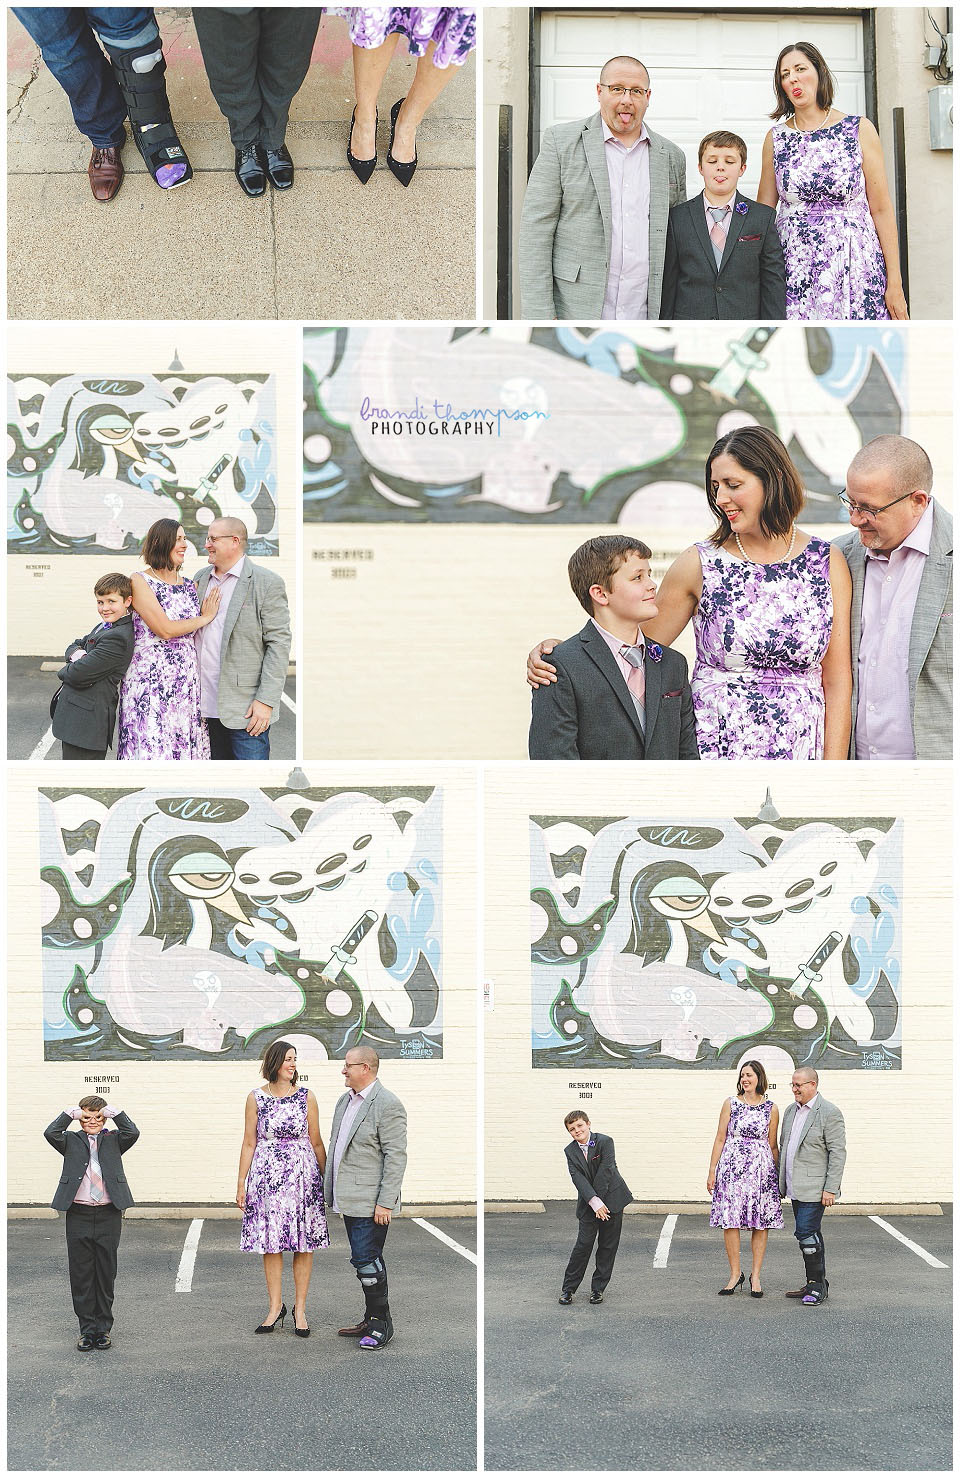 Urban family session in deep ellum, tx with mom, dad and elementary age son